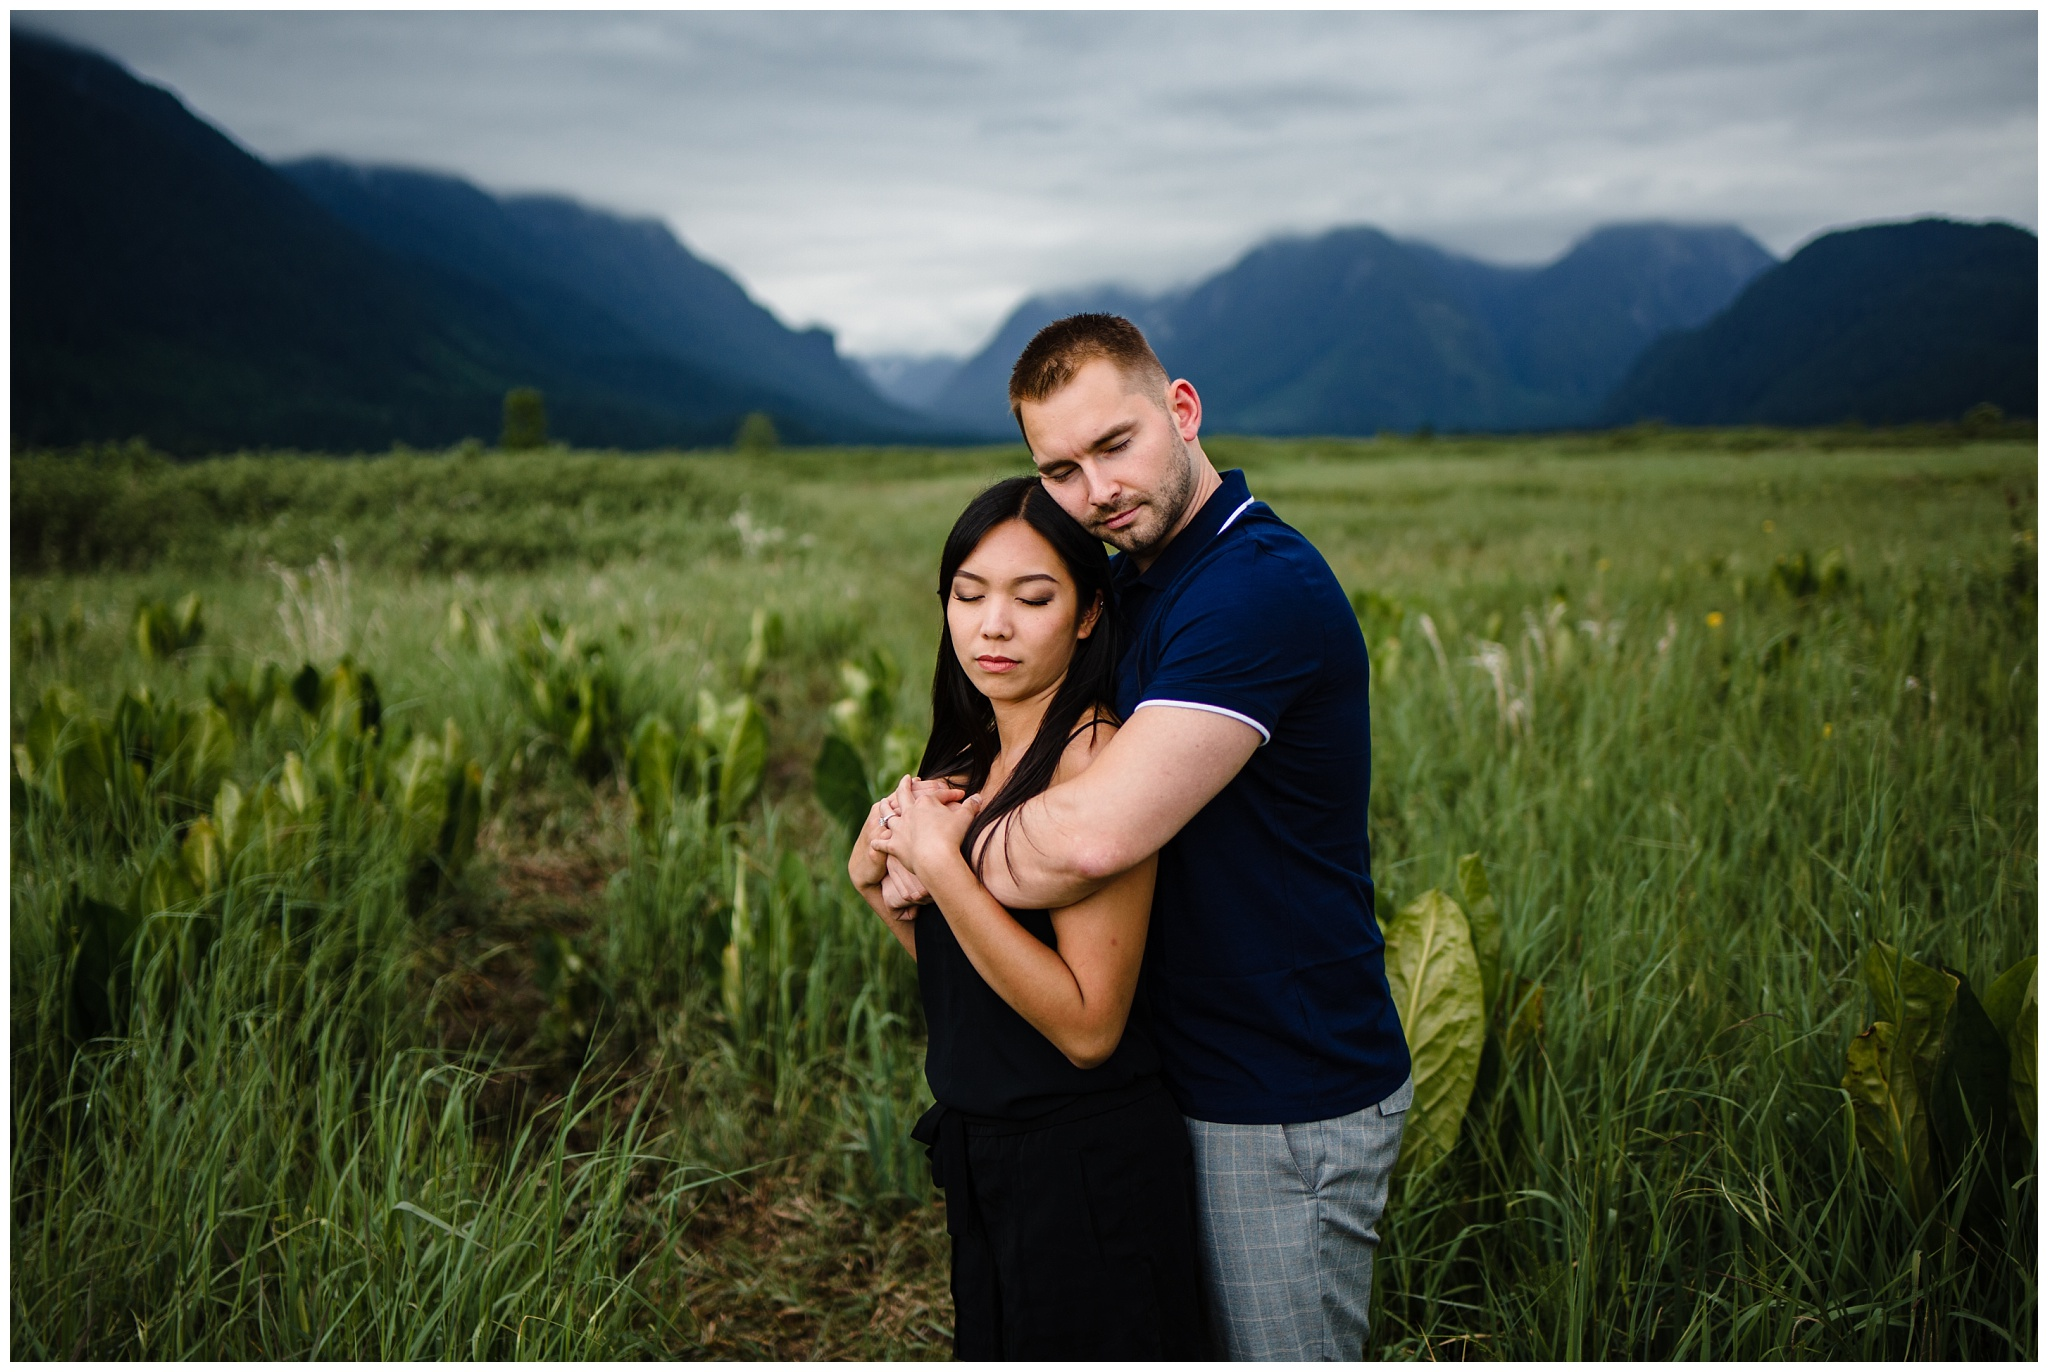 Pitt Lake Engagement Photos Maple Ridge Candid Fun Romantic Couples Photography_0003.jpg